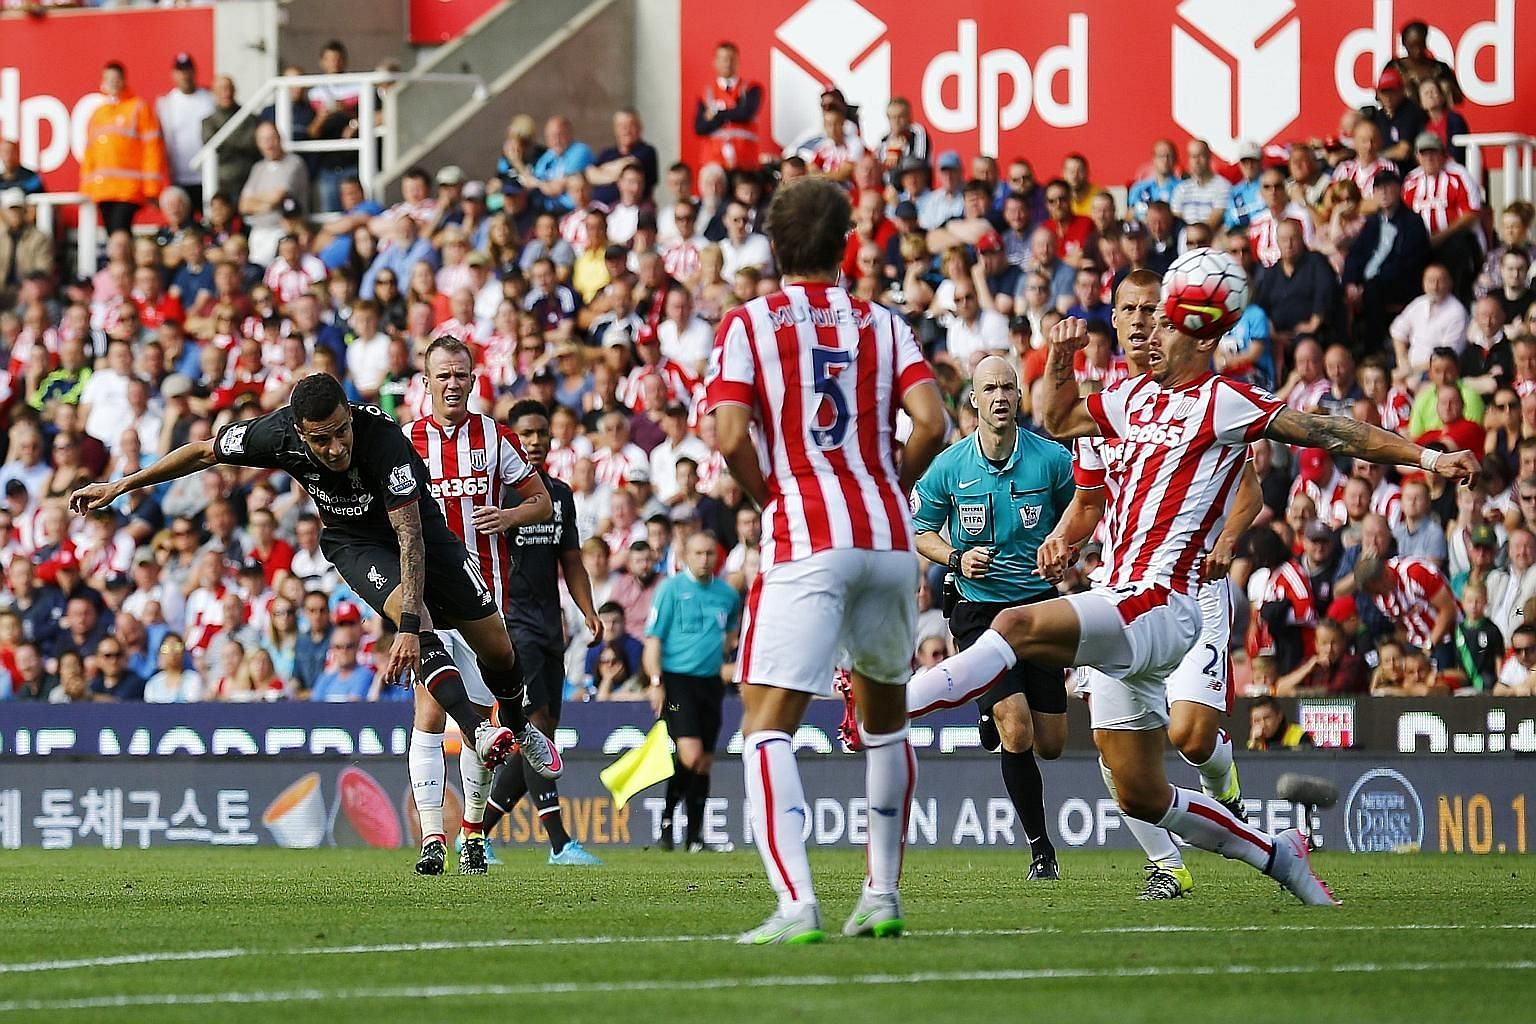 Philippe Coutinho scoring the game's only goal - turning and then taking a shot that curled and dipped beyond Jack Butland (not in picture) in the Stoke goal.